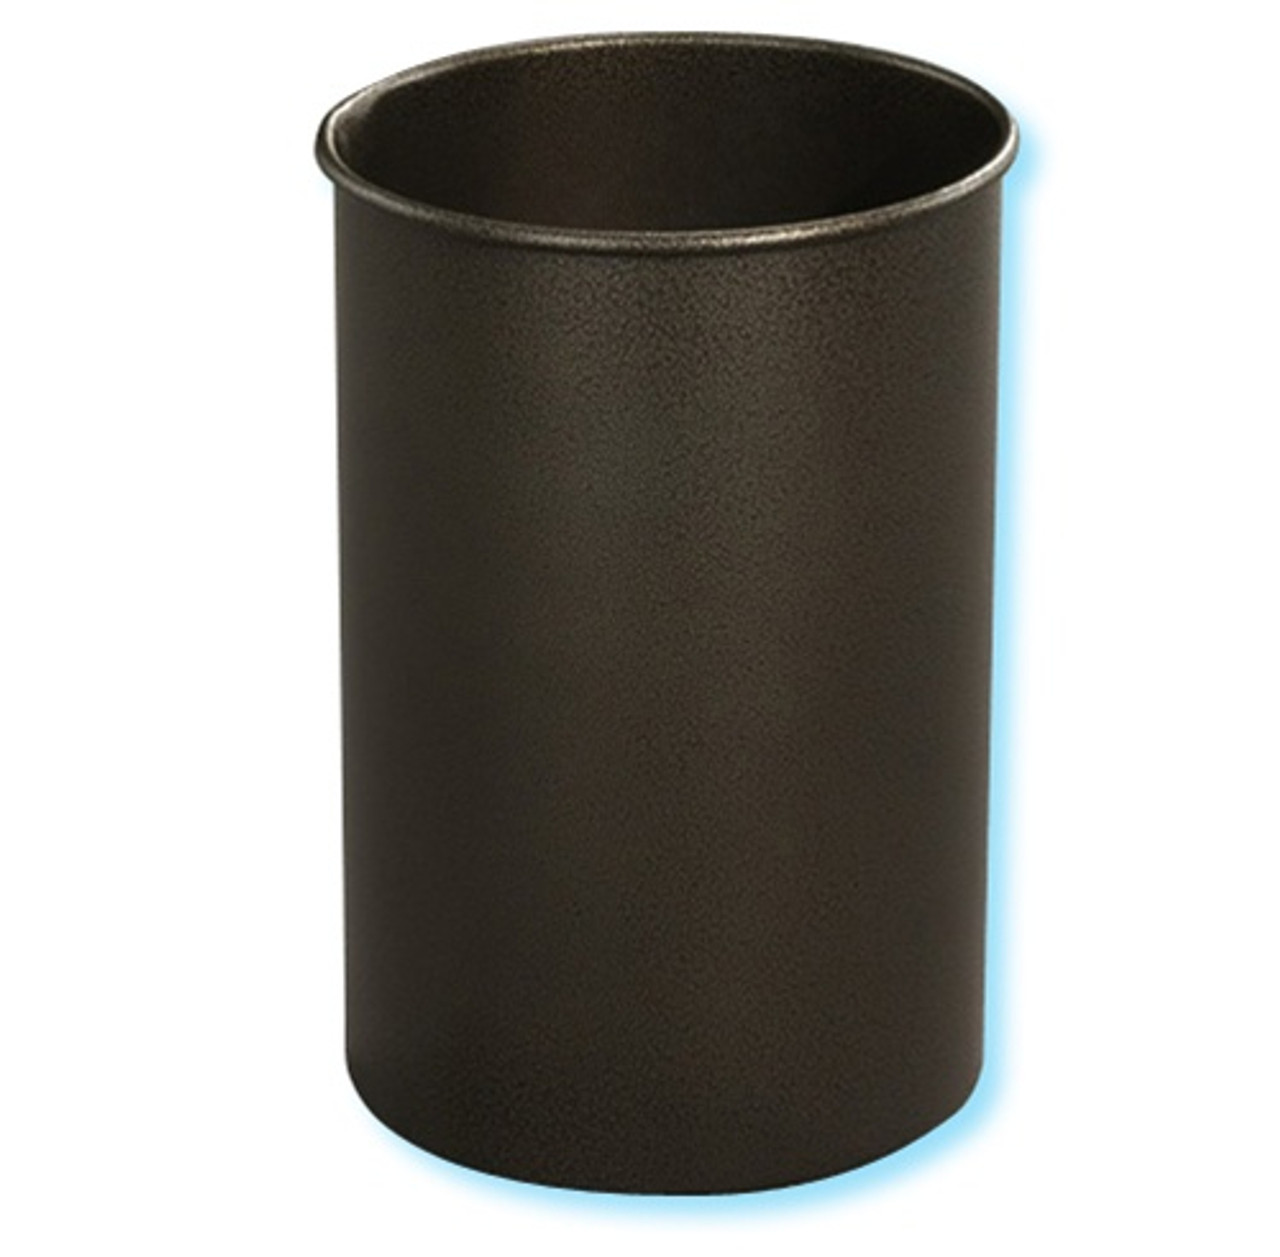 5 Gallon 10 x 15 Open Top Home Office Wastebasket 29 Designer Colors